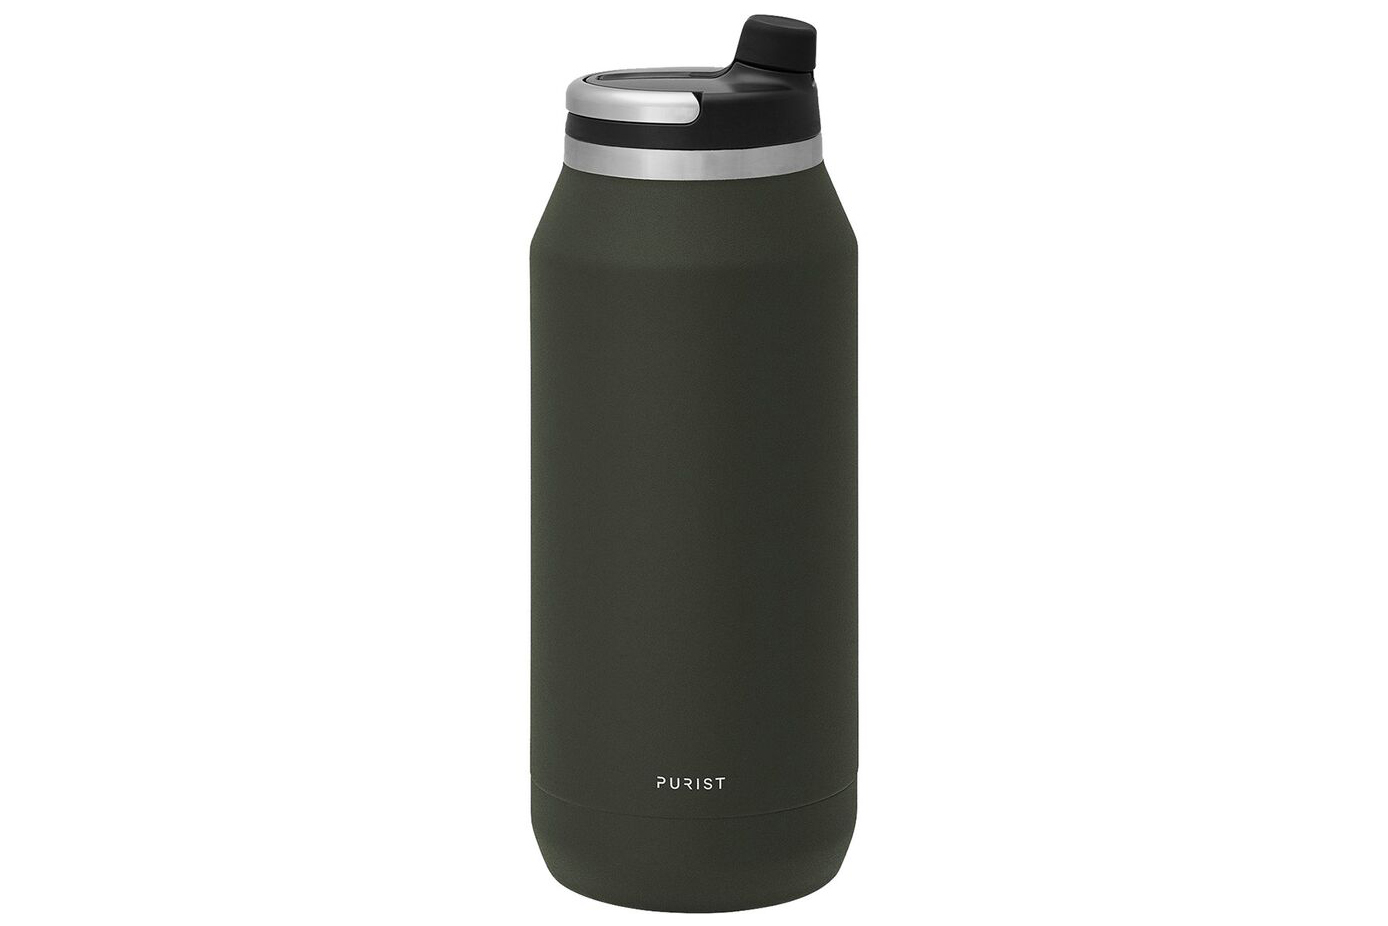 Purist Founder 32oz bottle